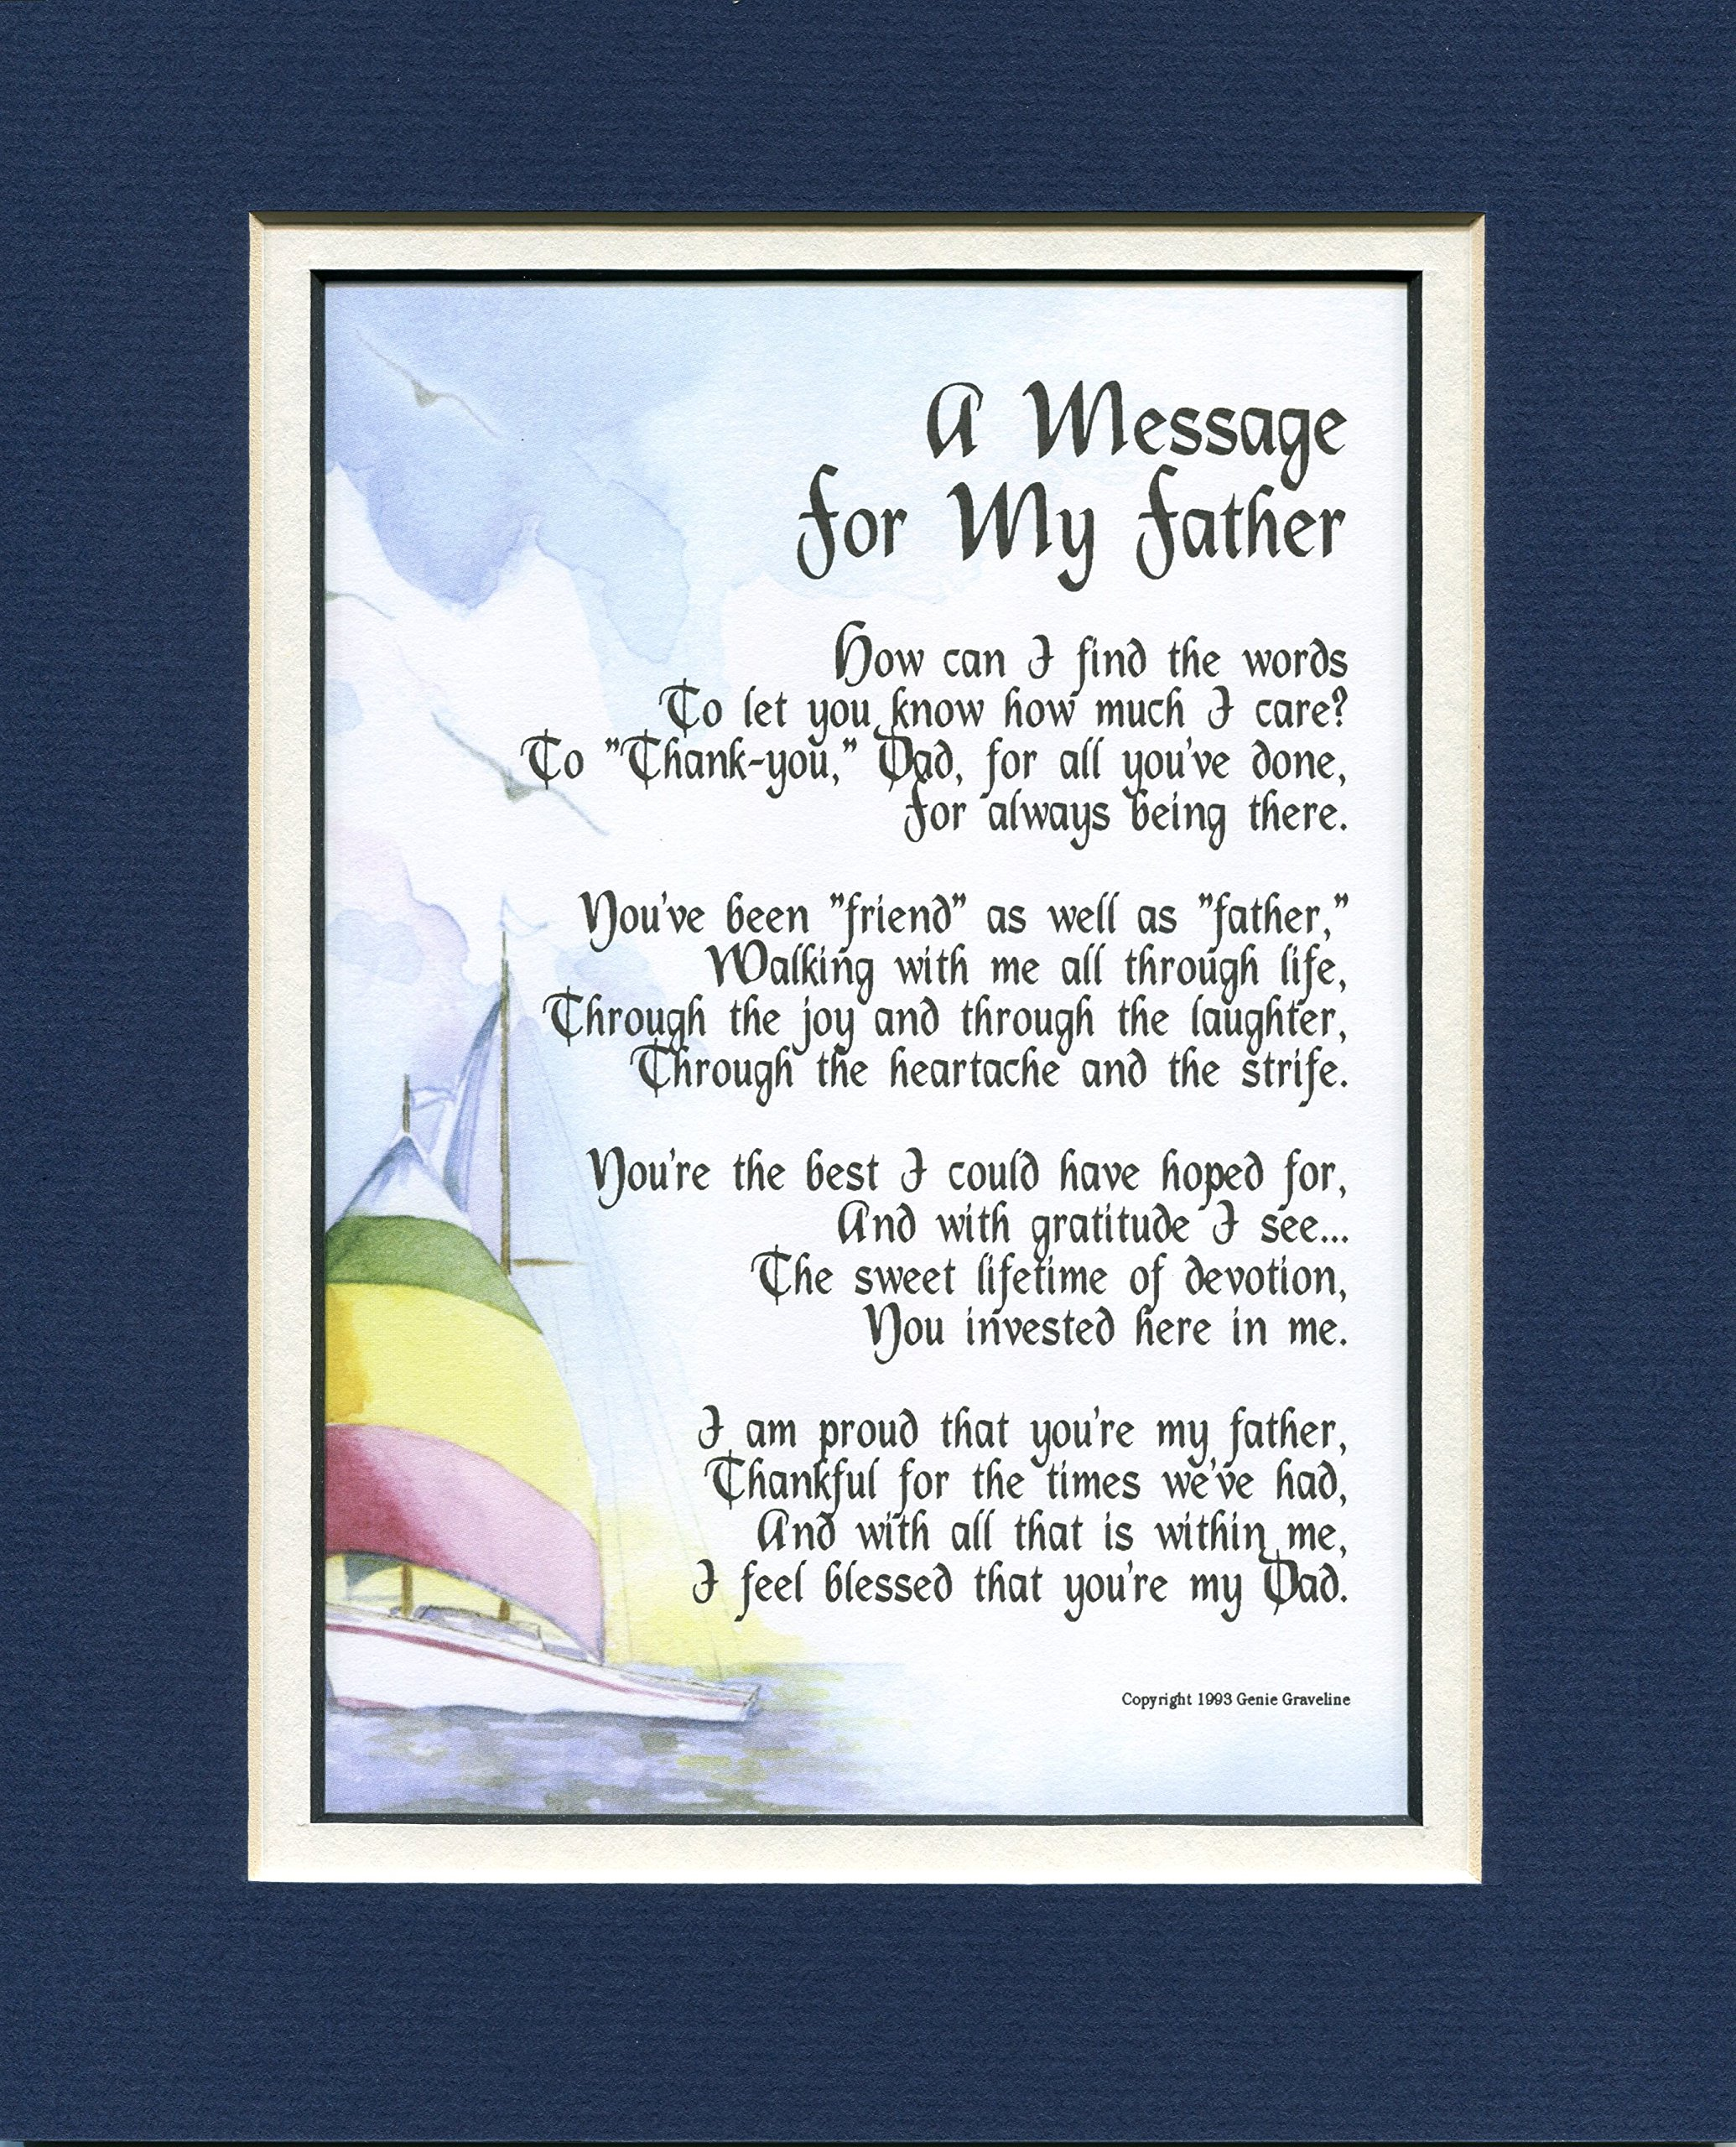 A Gift Present Poem For A Father Who Is Like A Friend, #19